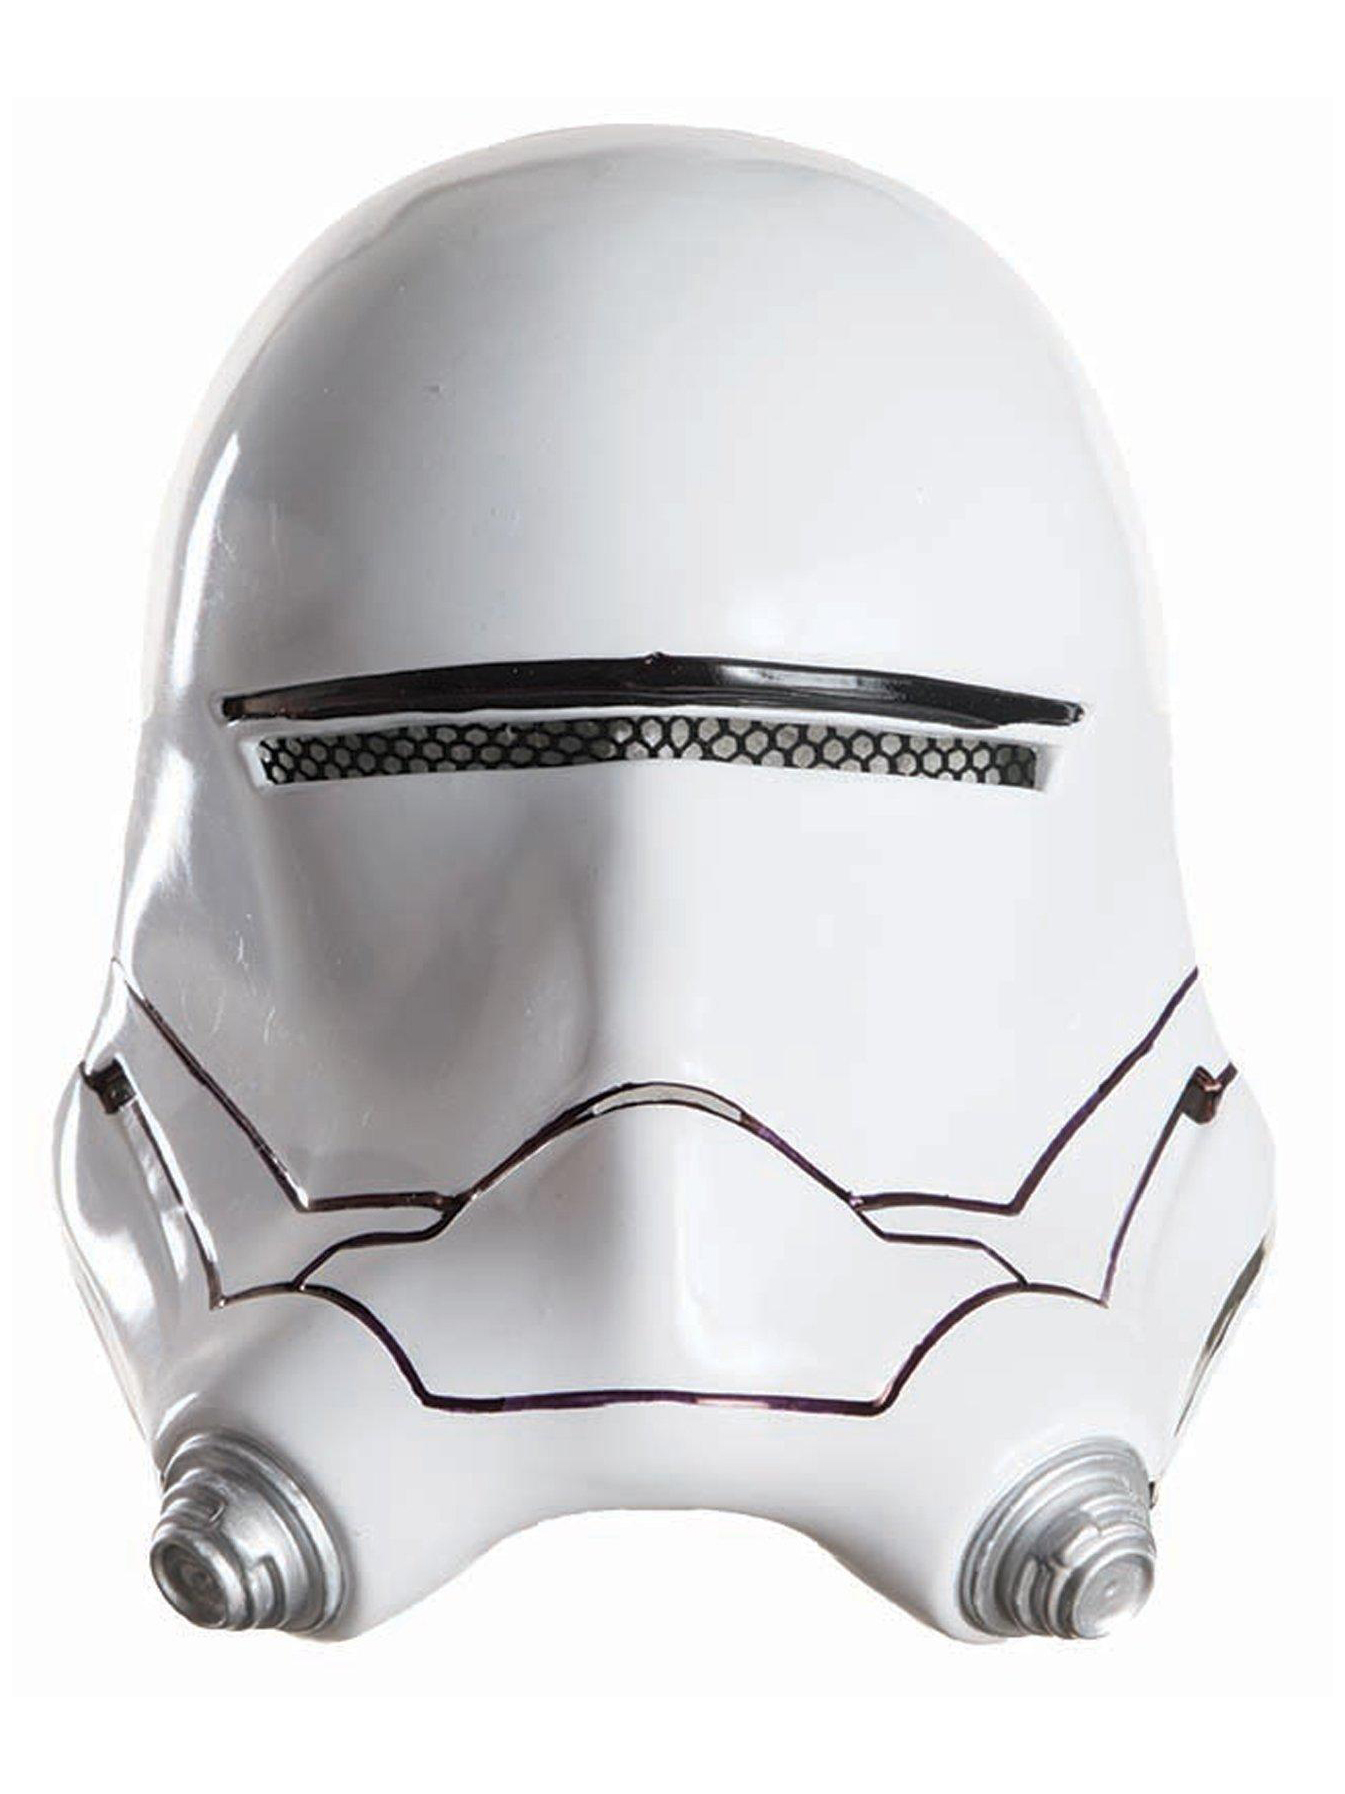 Star Wars: The Force Awakens - Boys Flametrooper Half Helmet 32291R